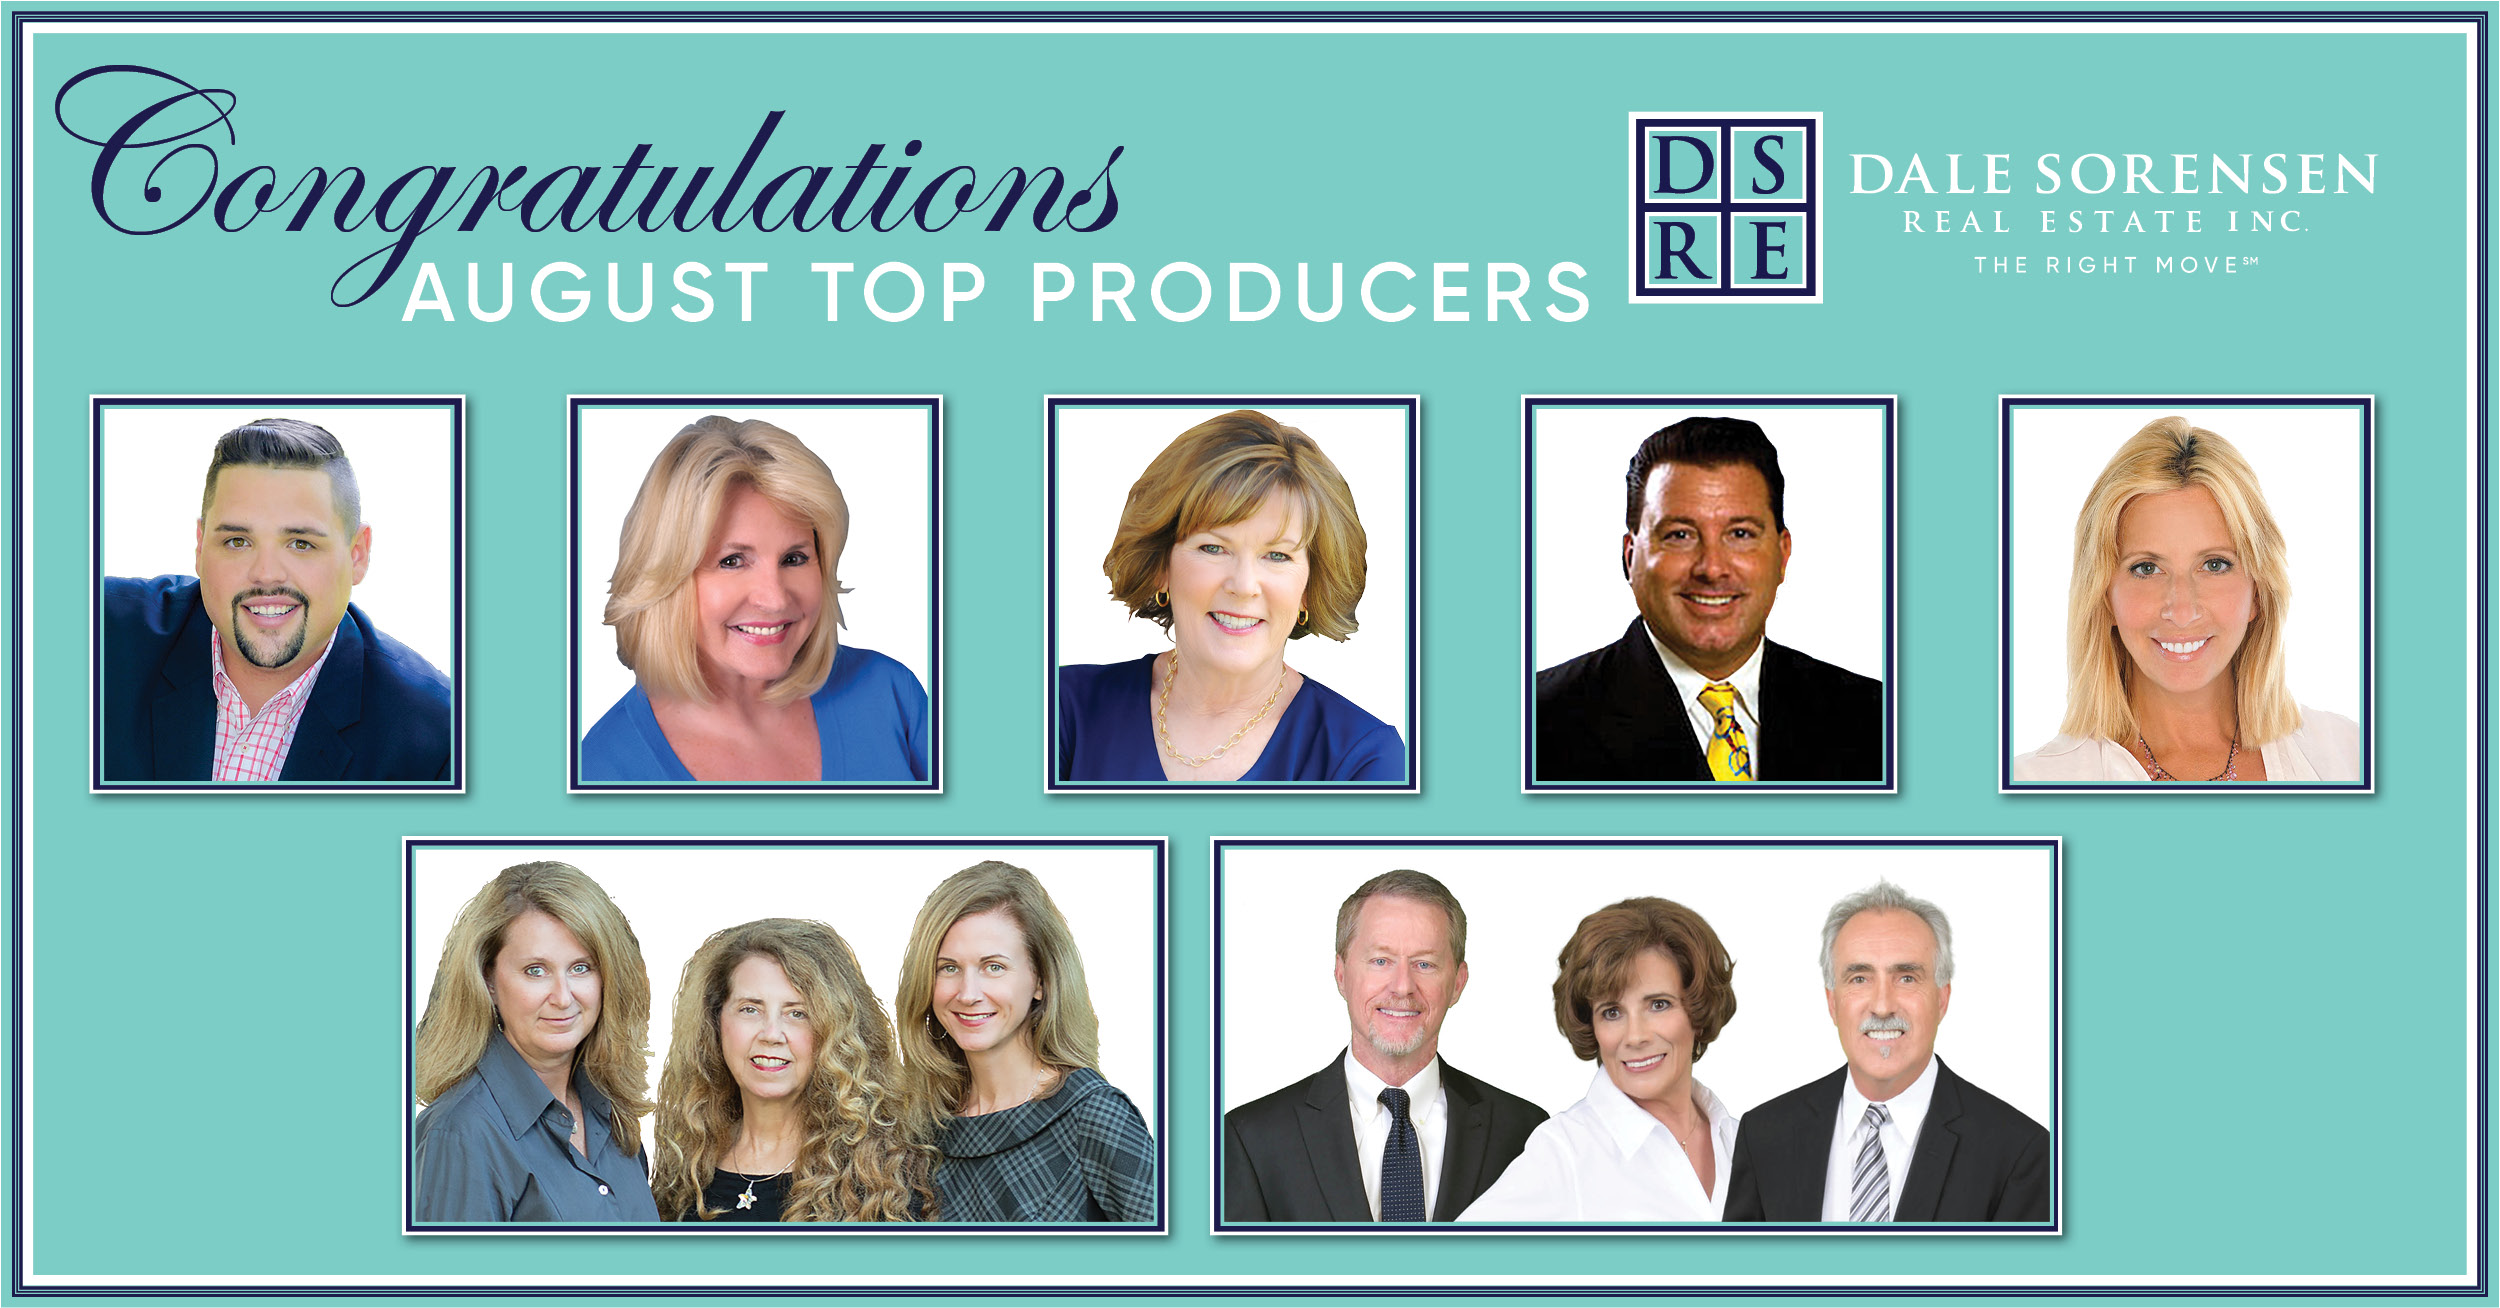 Congratulations August Top Producers DSRE Dale Sorensen Real Estate Inc. THE RIGHT MOVE